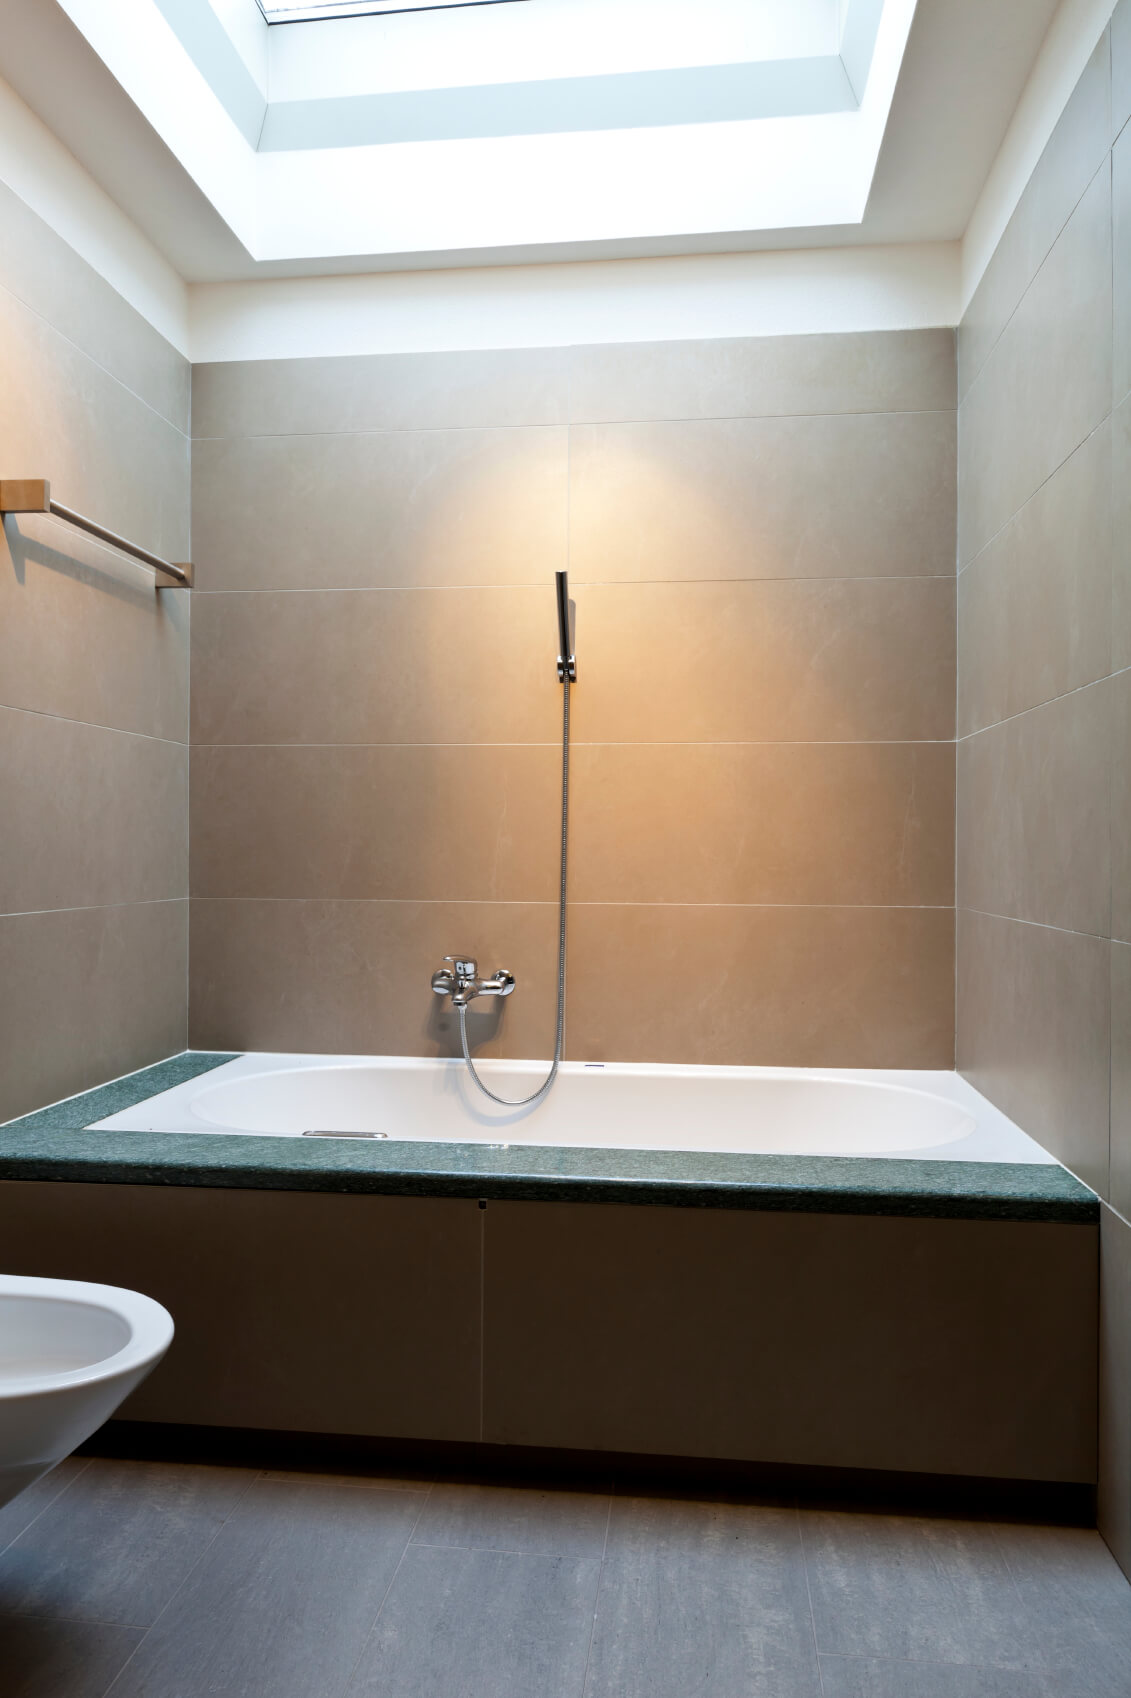 Another view of the previous bathroom highlights the stunning effects of the skylight.